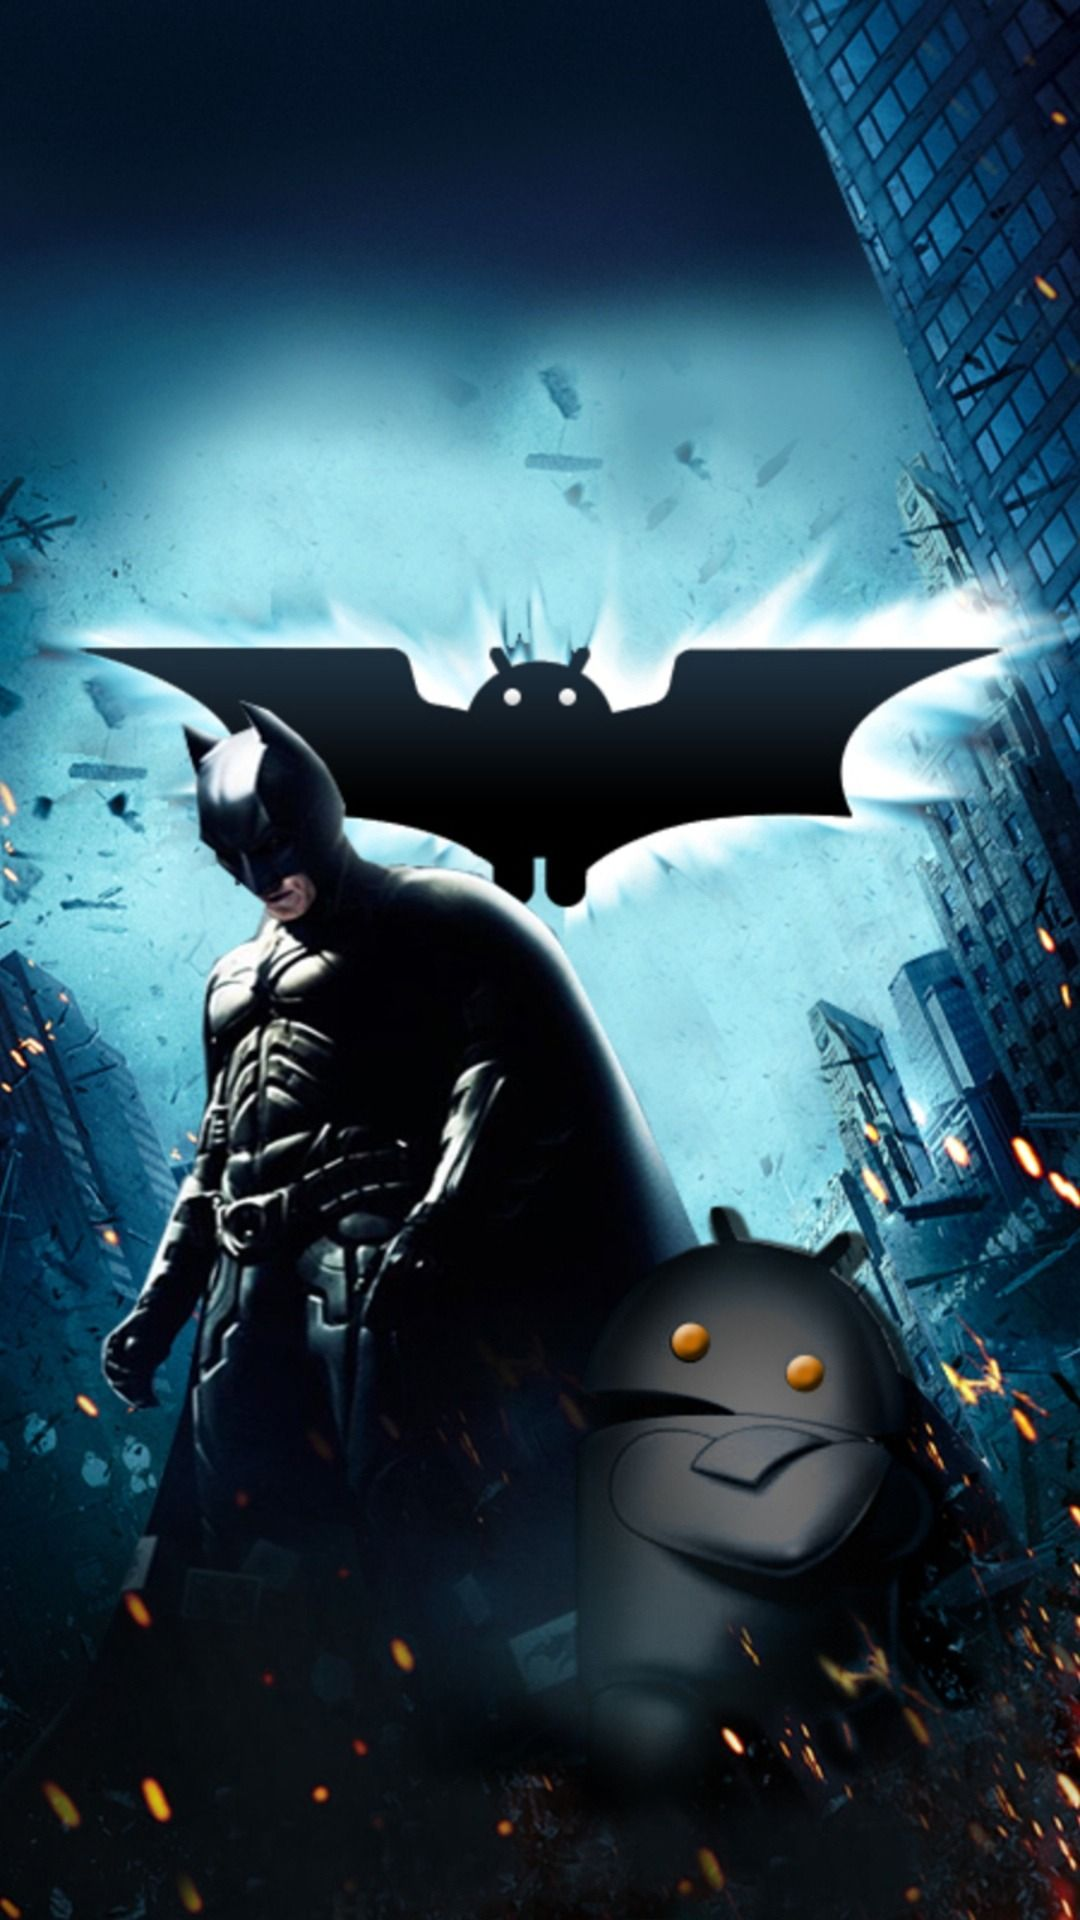 Batman The Enemy Within MOD APK (Unlocked) Android Game